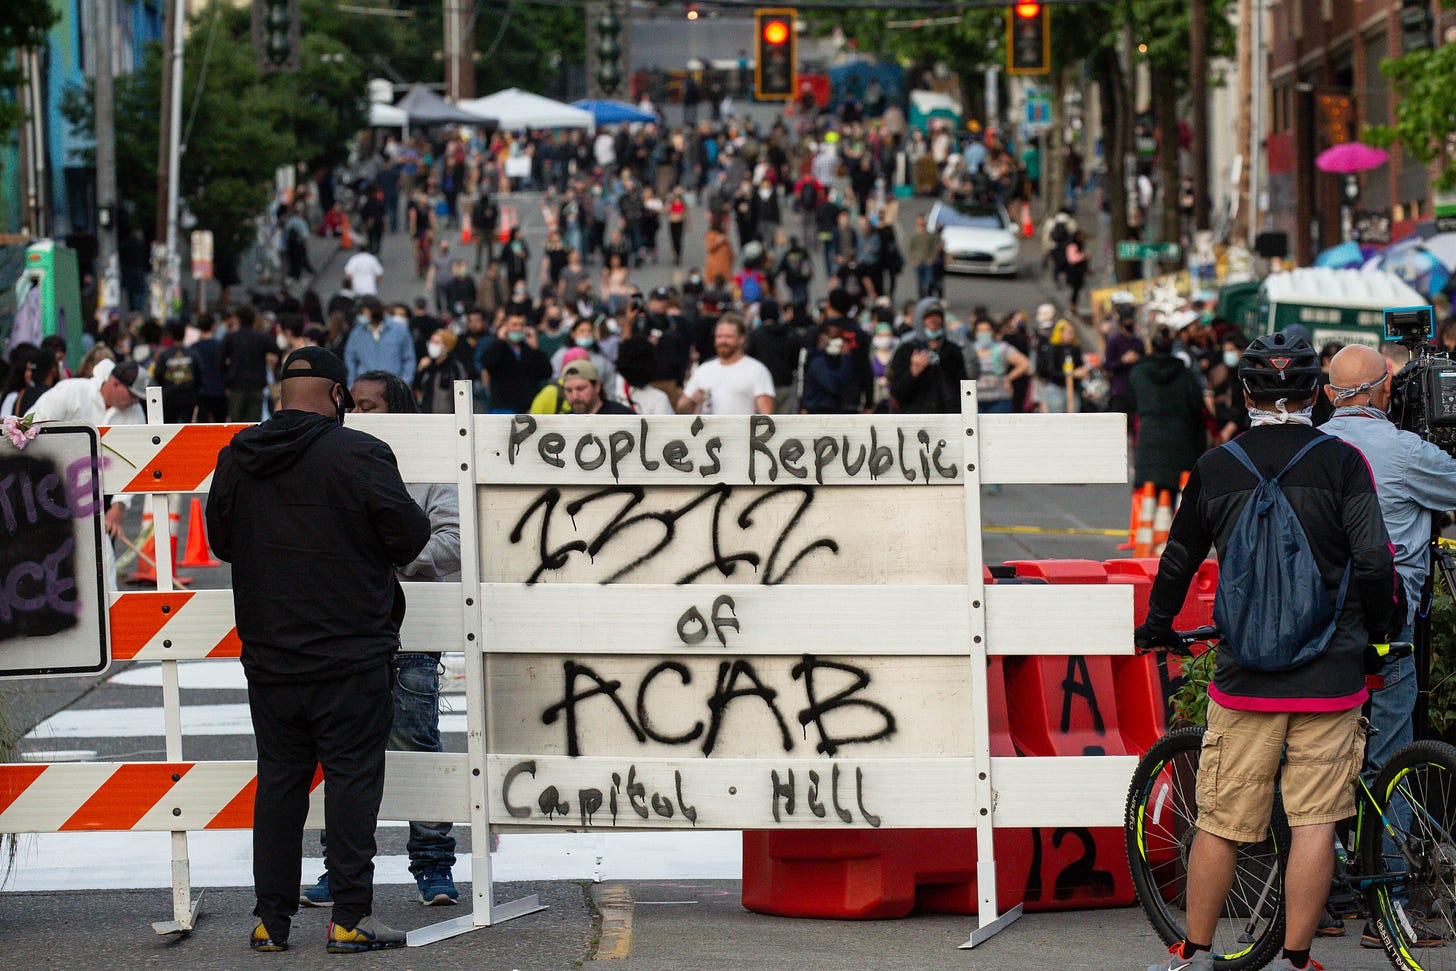 Seattle's Capitol Hill Autonomous Zone, Where Protesters Have Taken Control  of the Streets